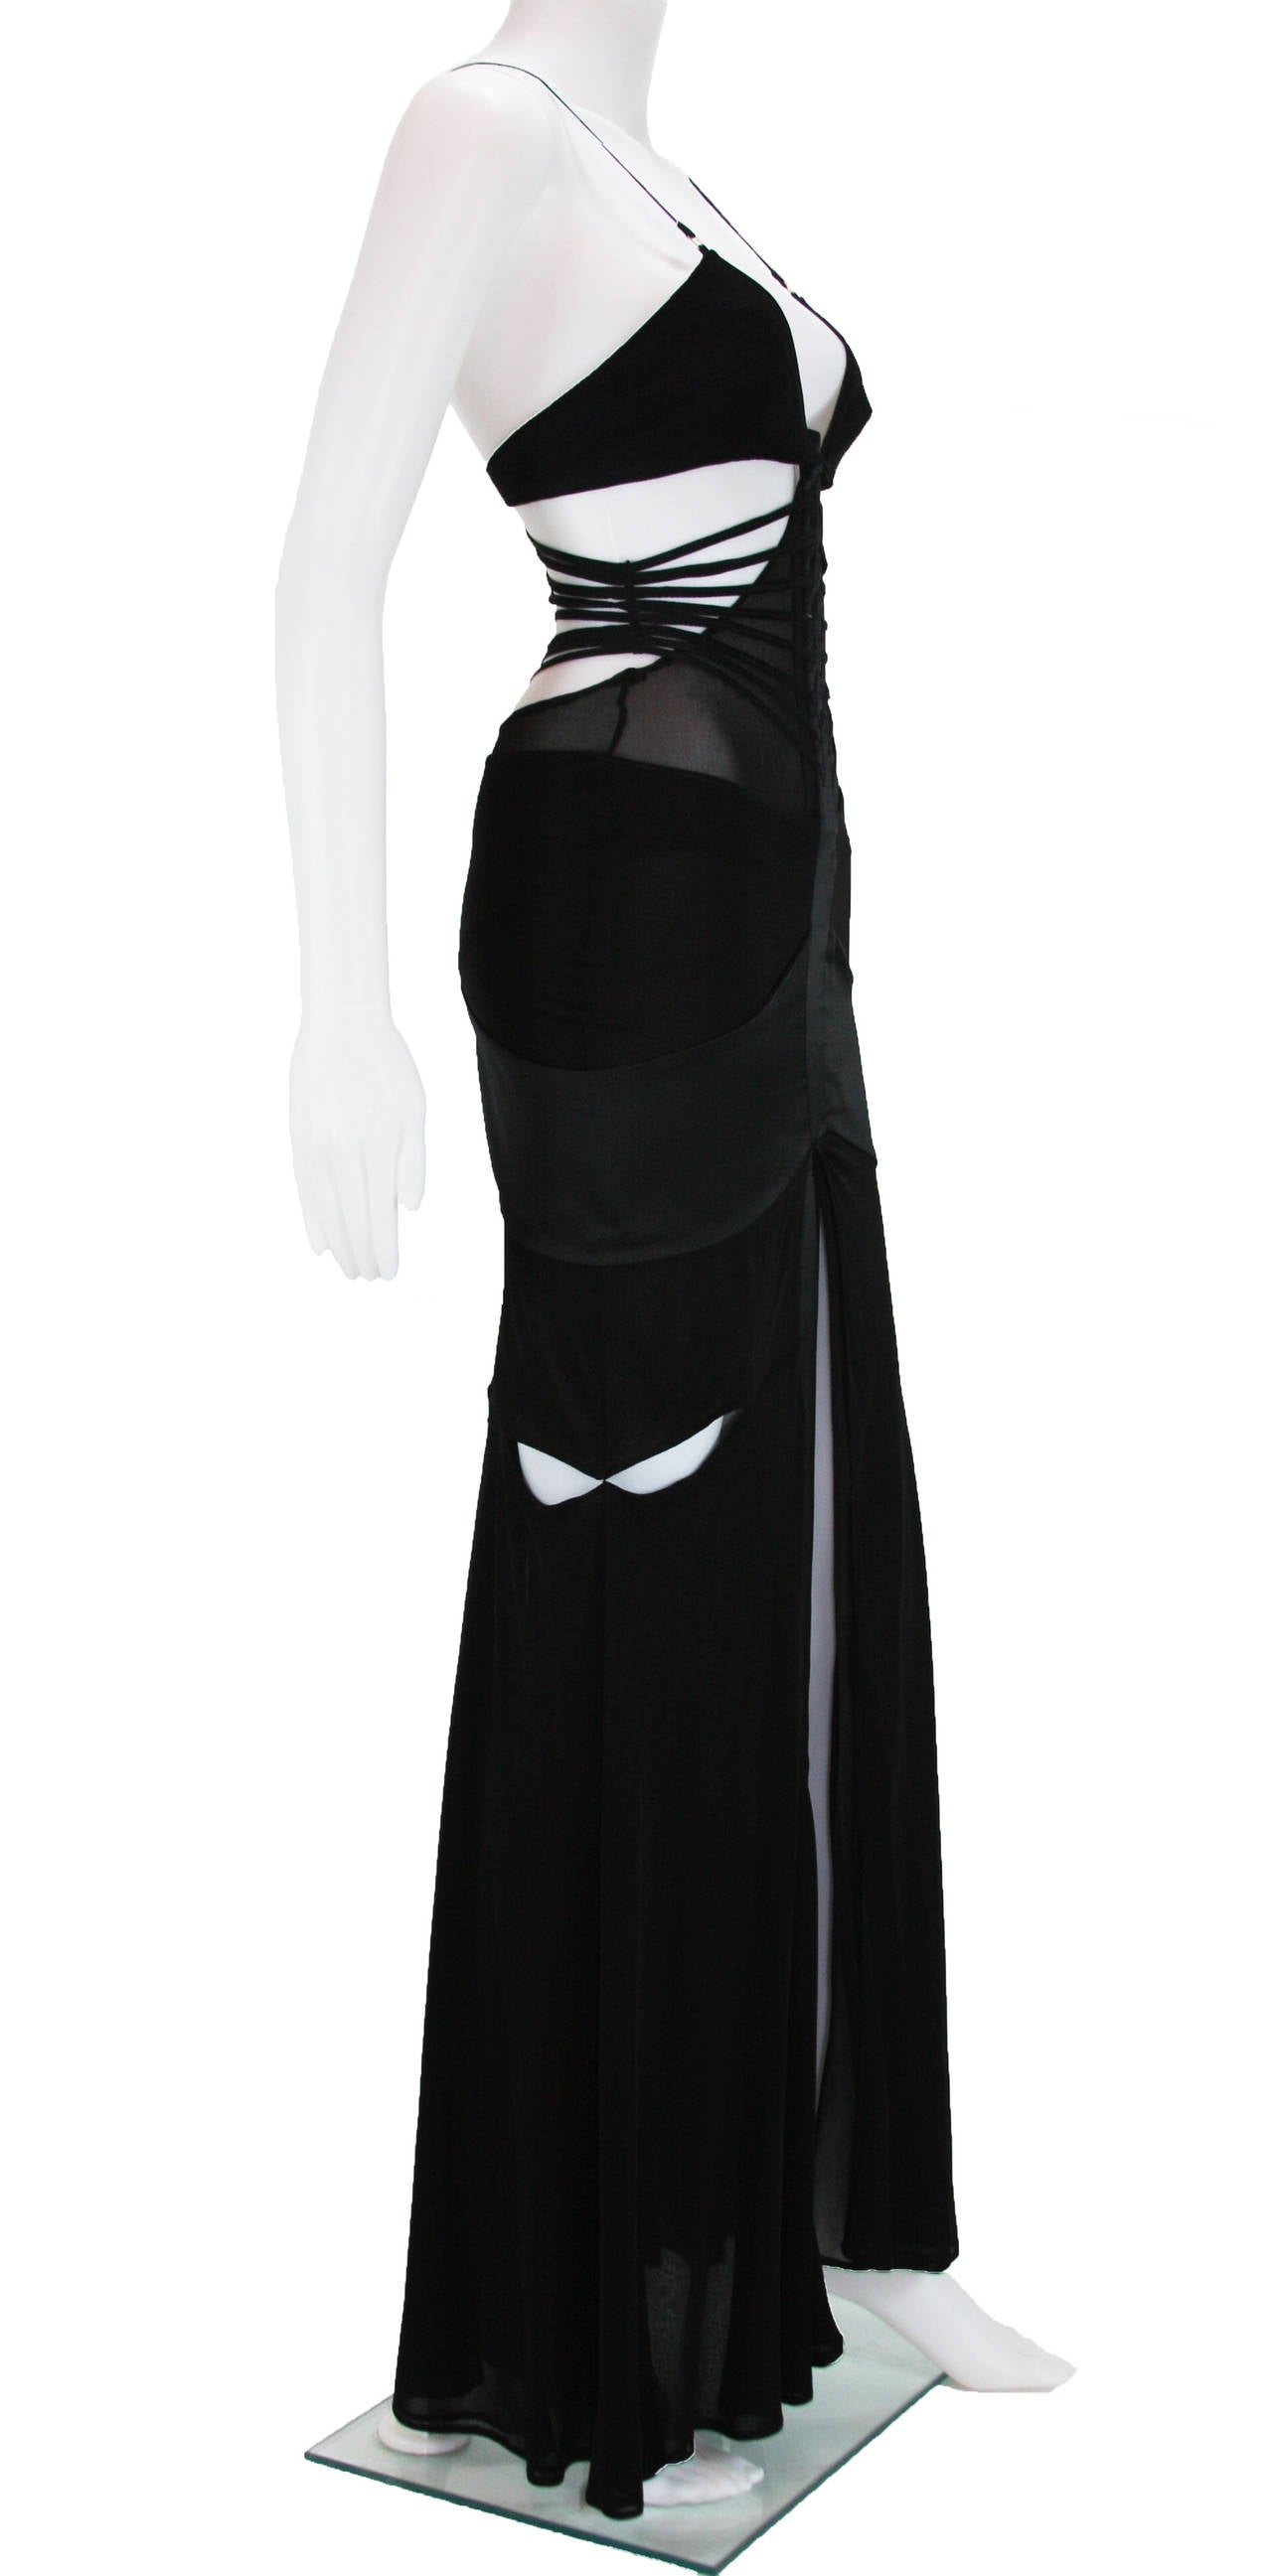 2003 Tom Ford for Gucci black bandage gown 2